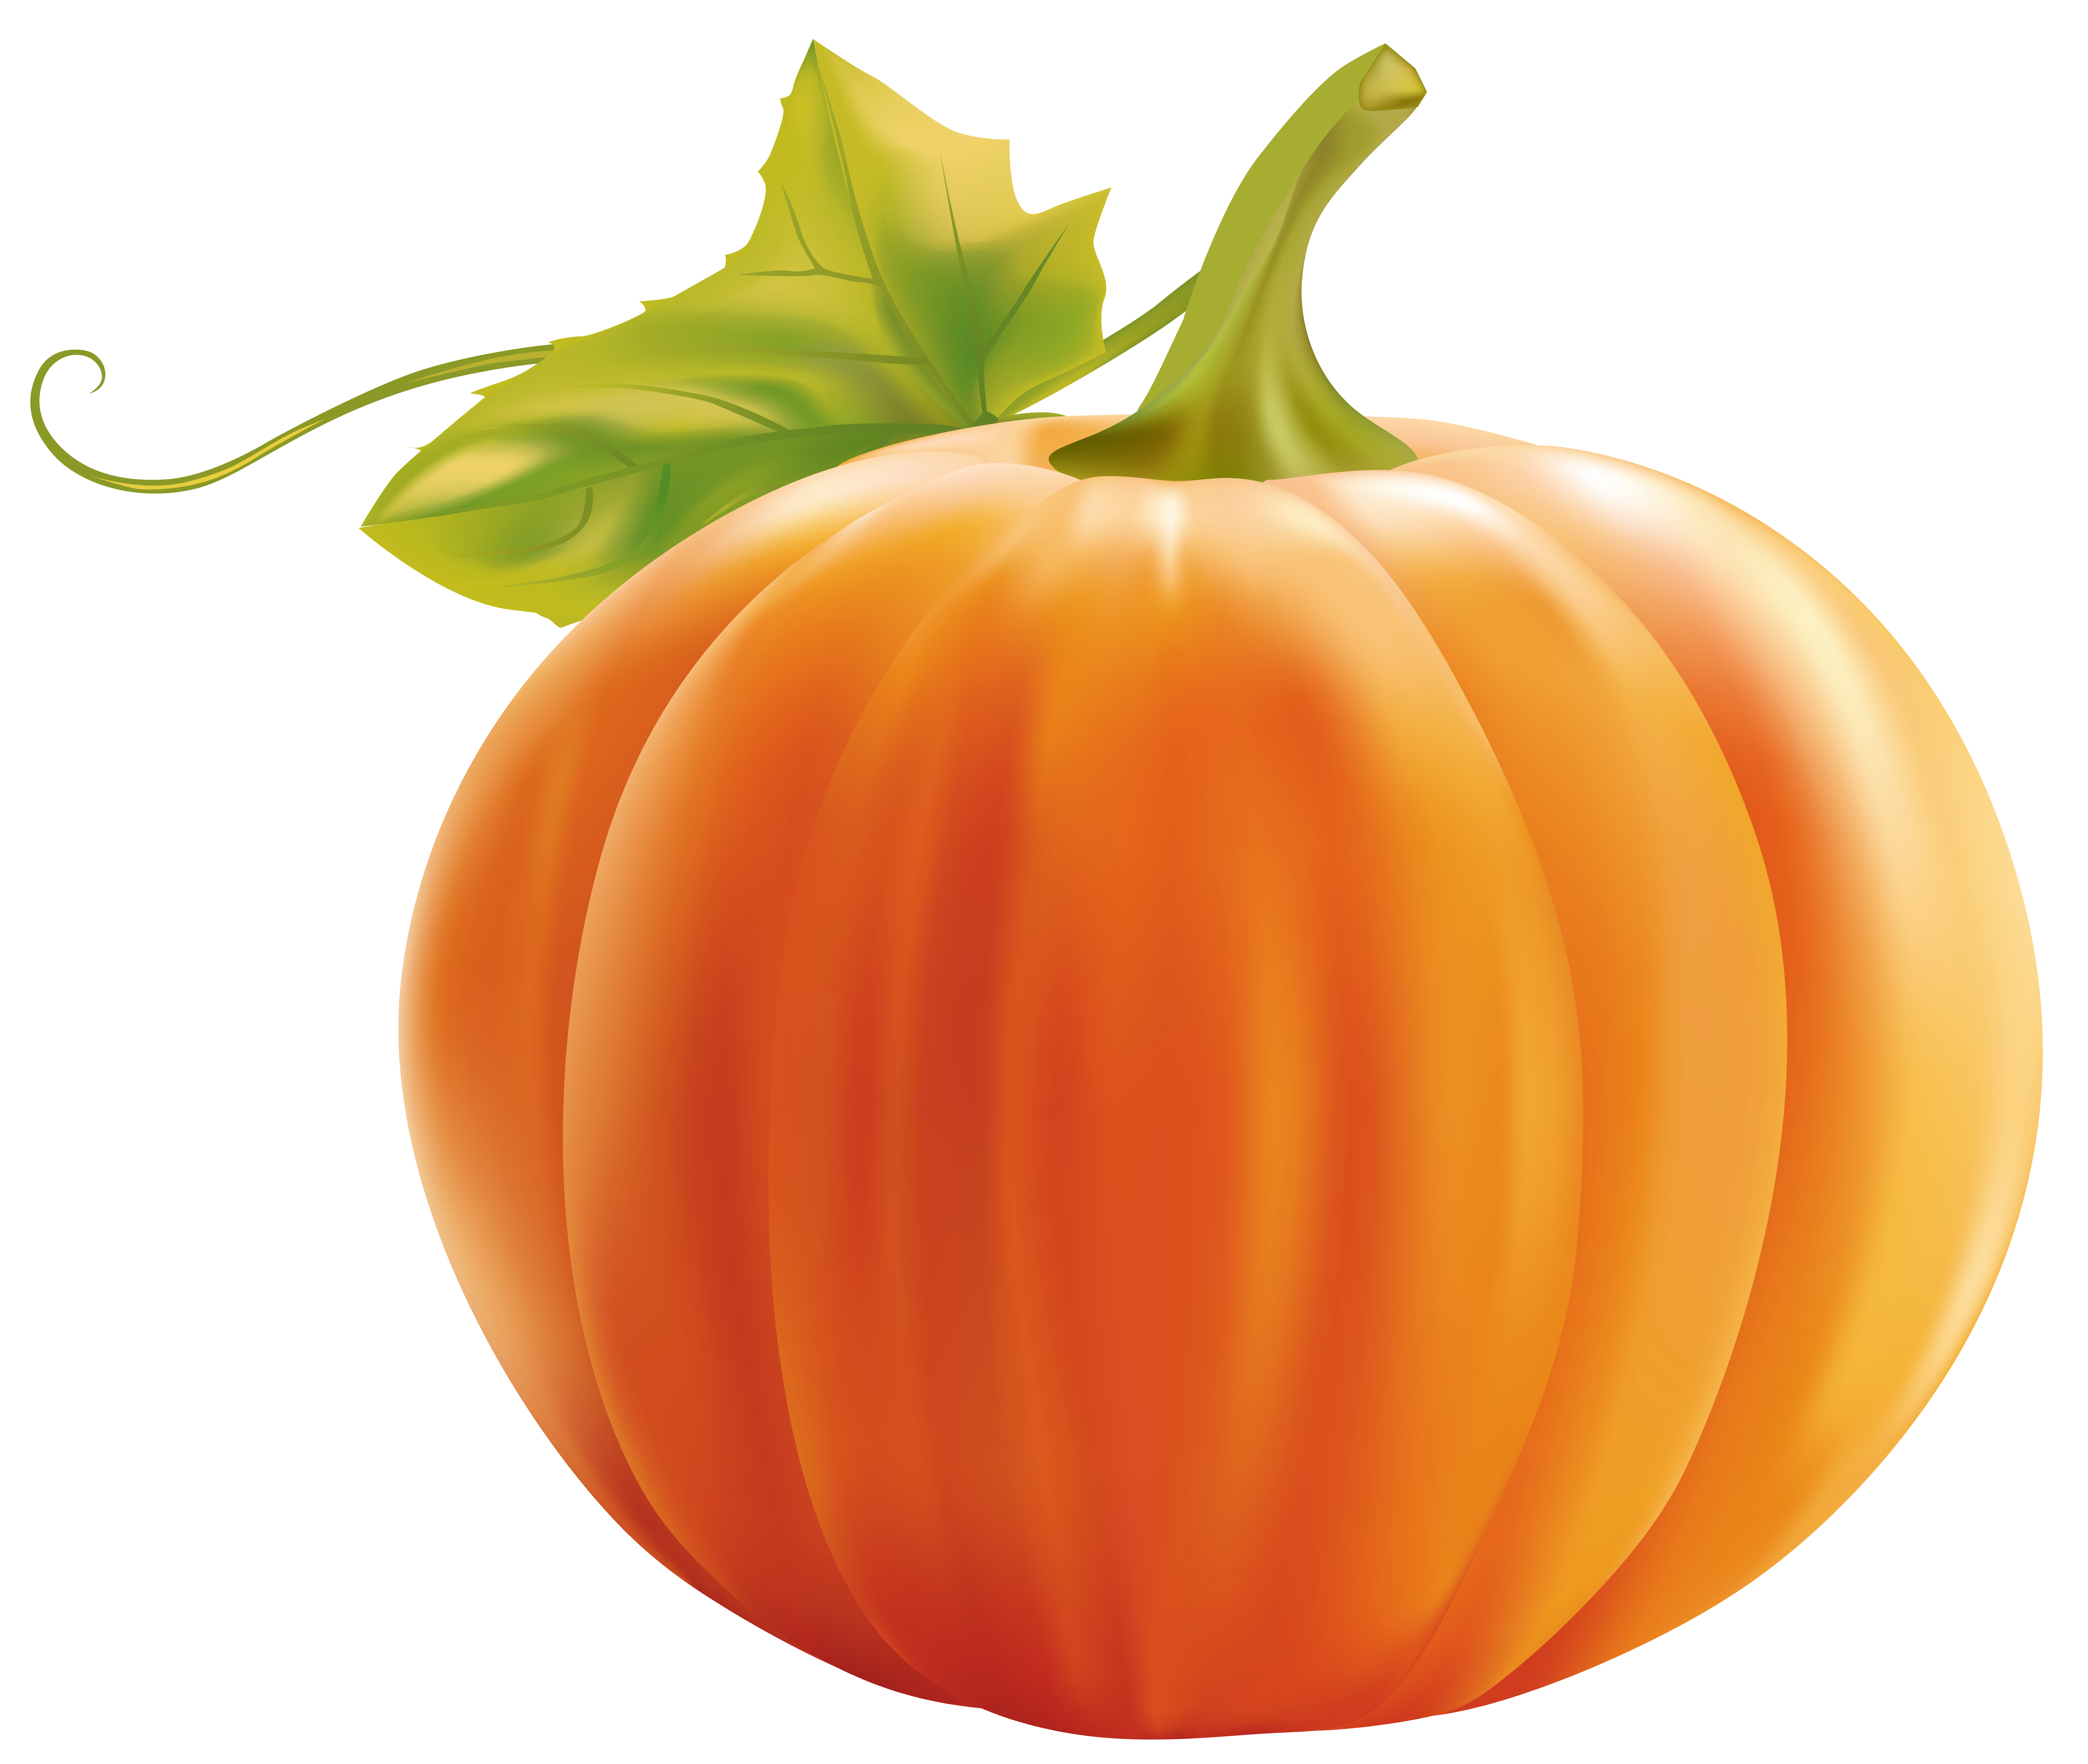 Pumpkin clipart. Png image gallery yopriceville